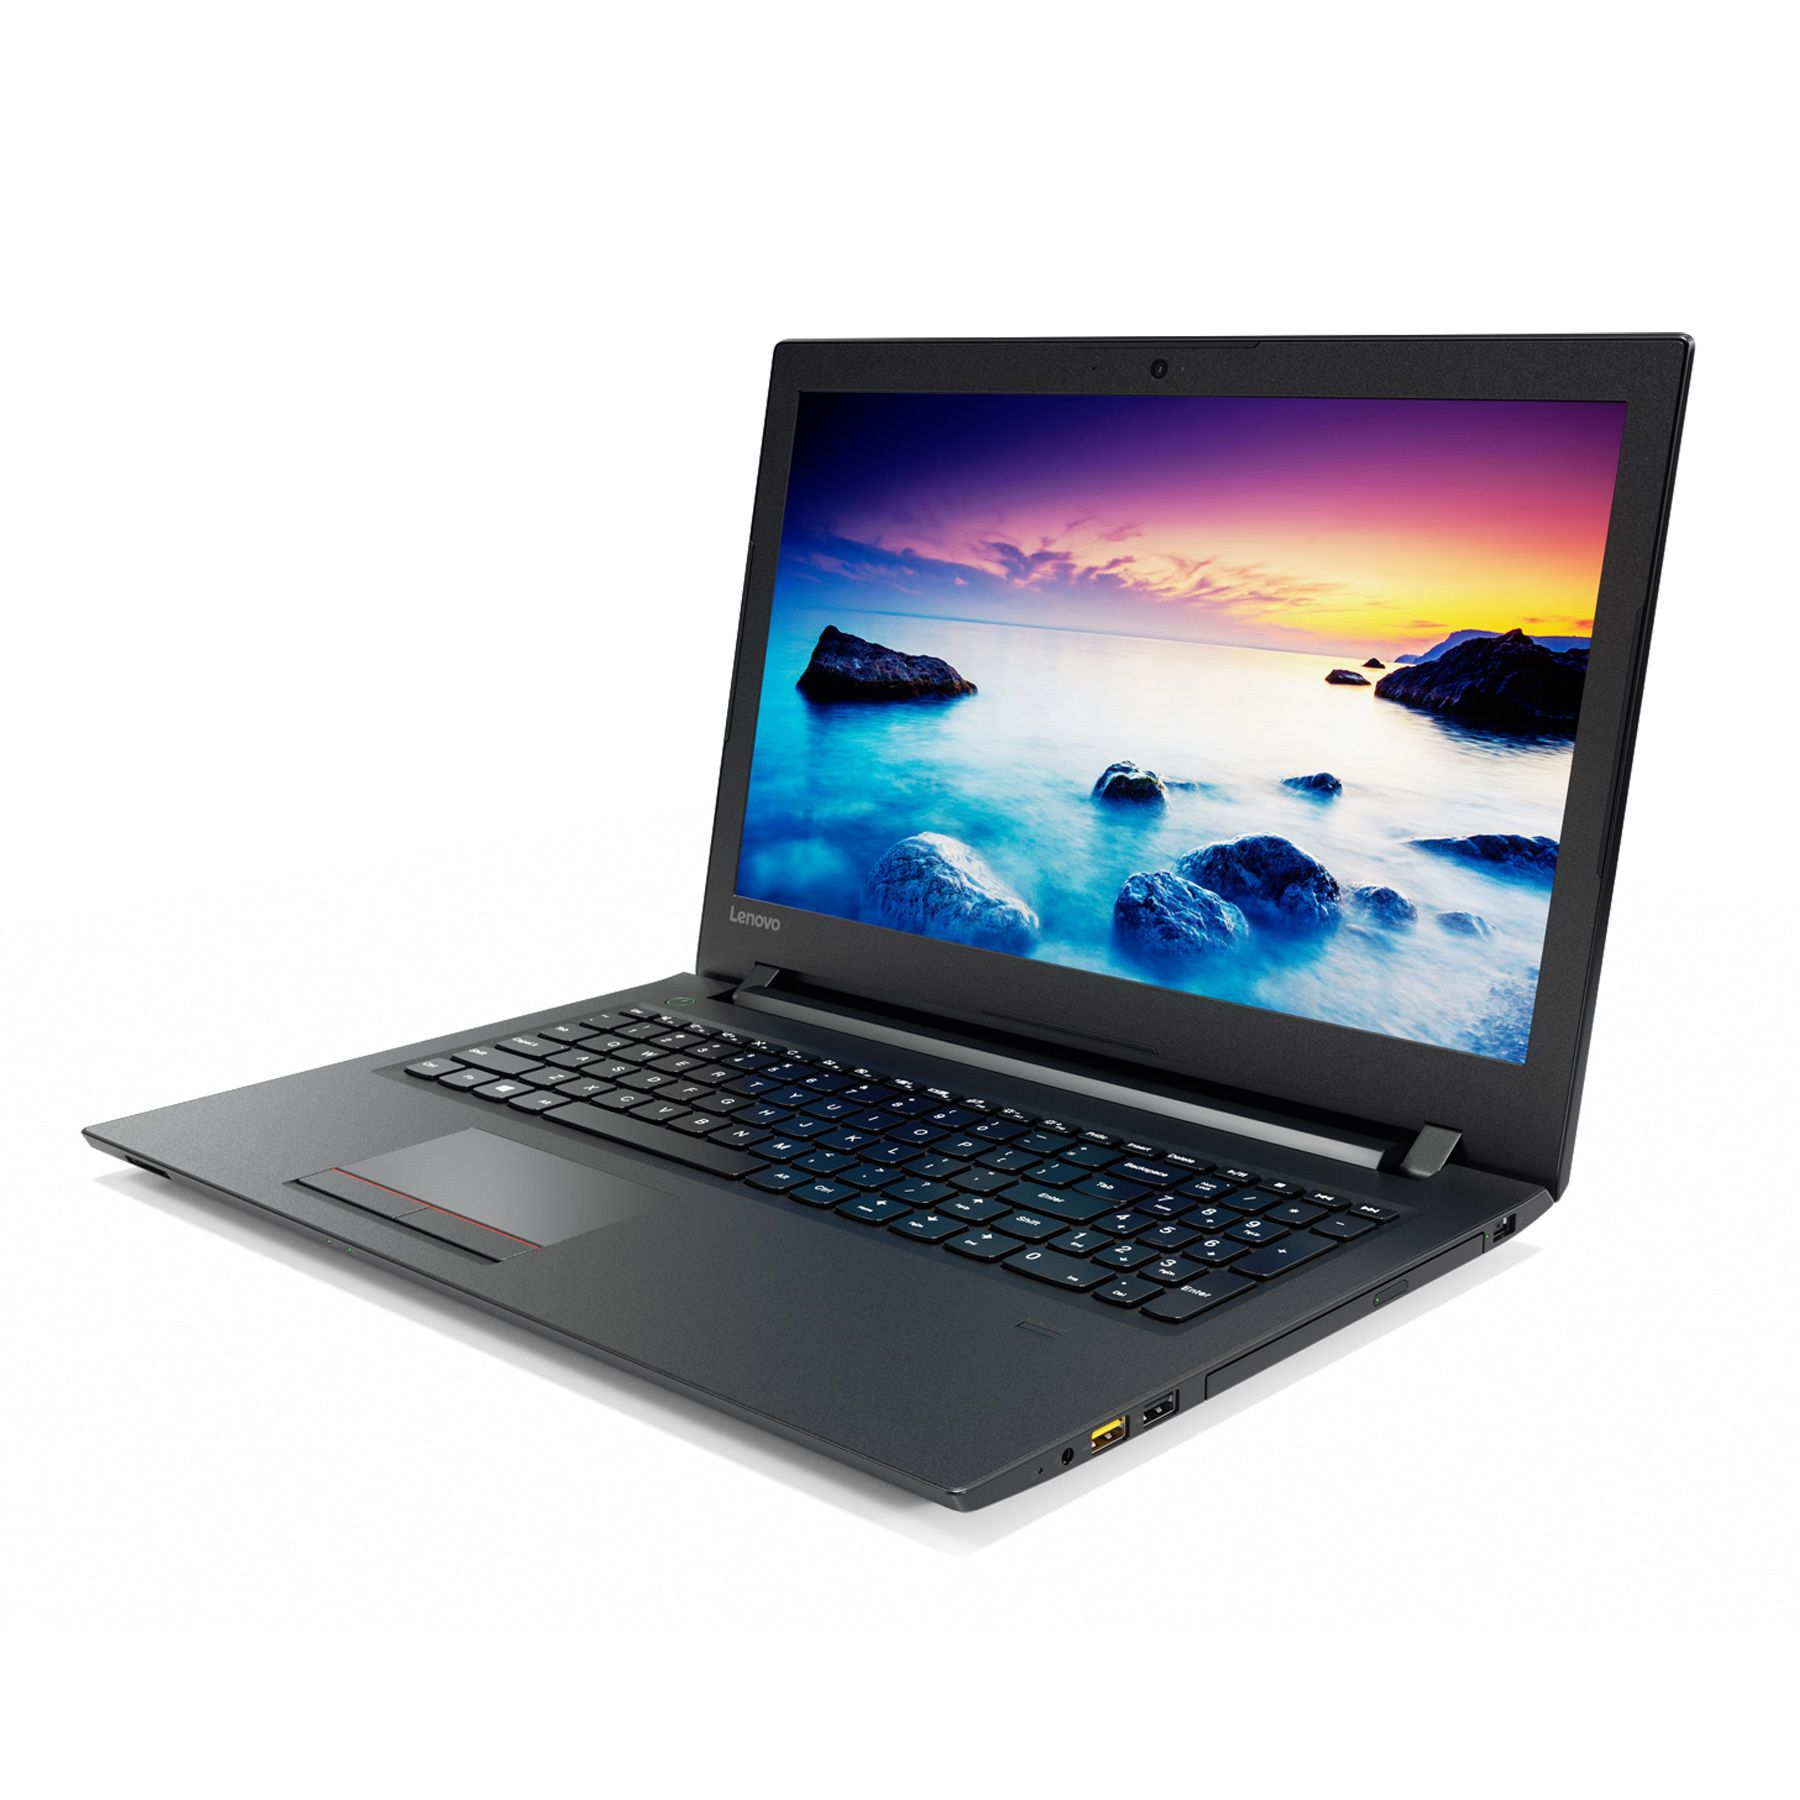 "notebooksbilliger ""Lenovo V510 15IKB 80WQ005EGE 15 6"""" Full HD IPS"